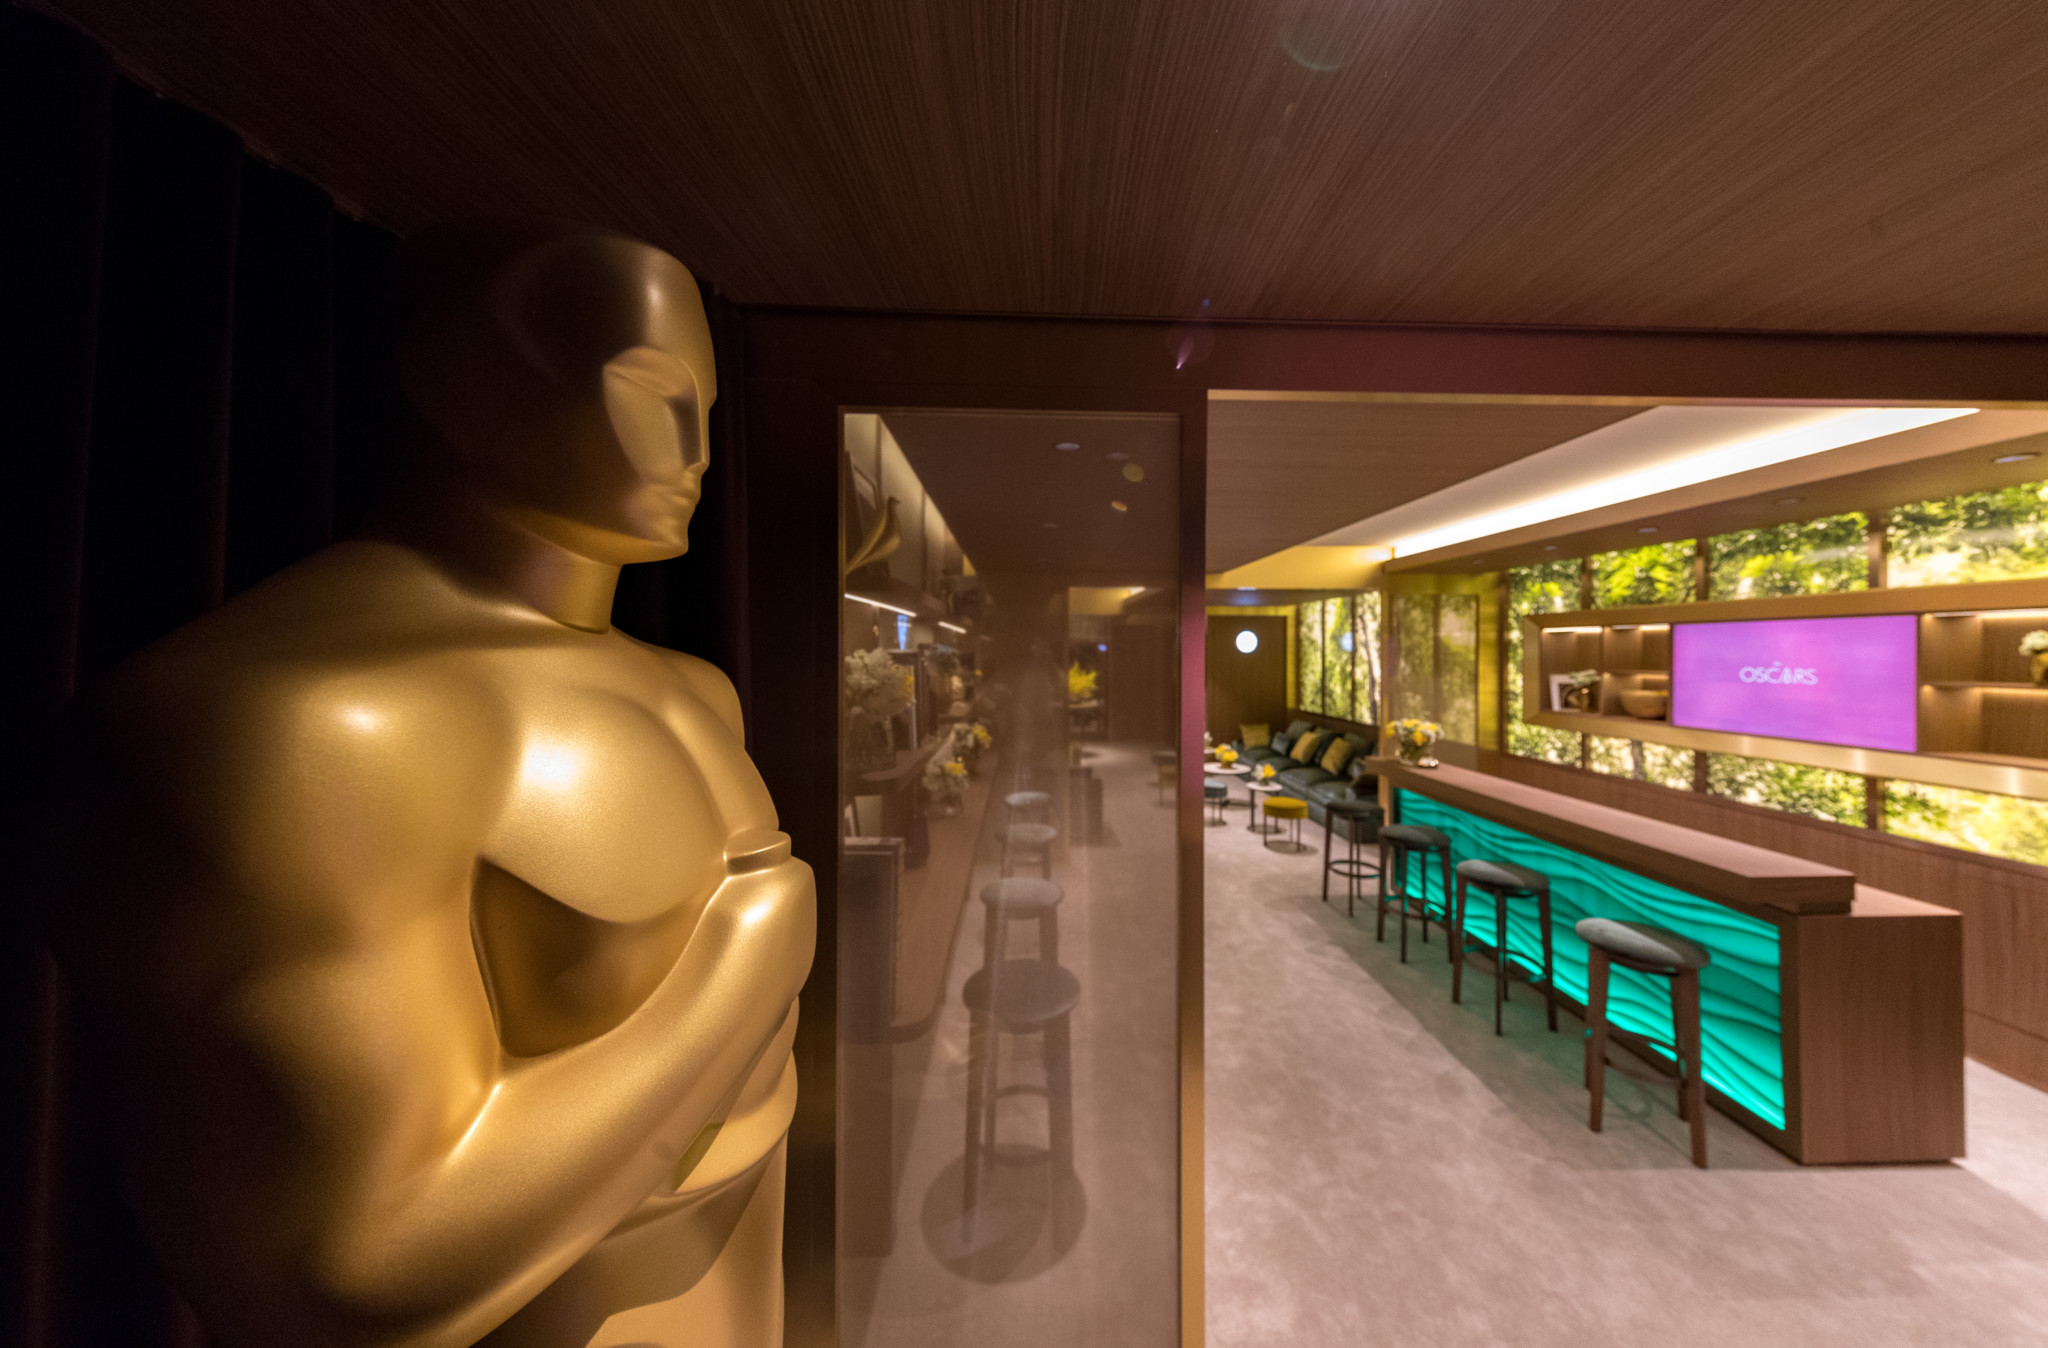 89th Annual Academy Awards – The Oscars Greenroom, Designed By Rolex